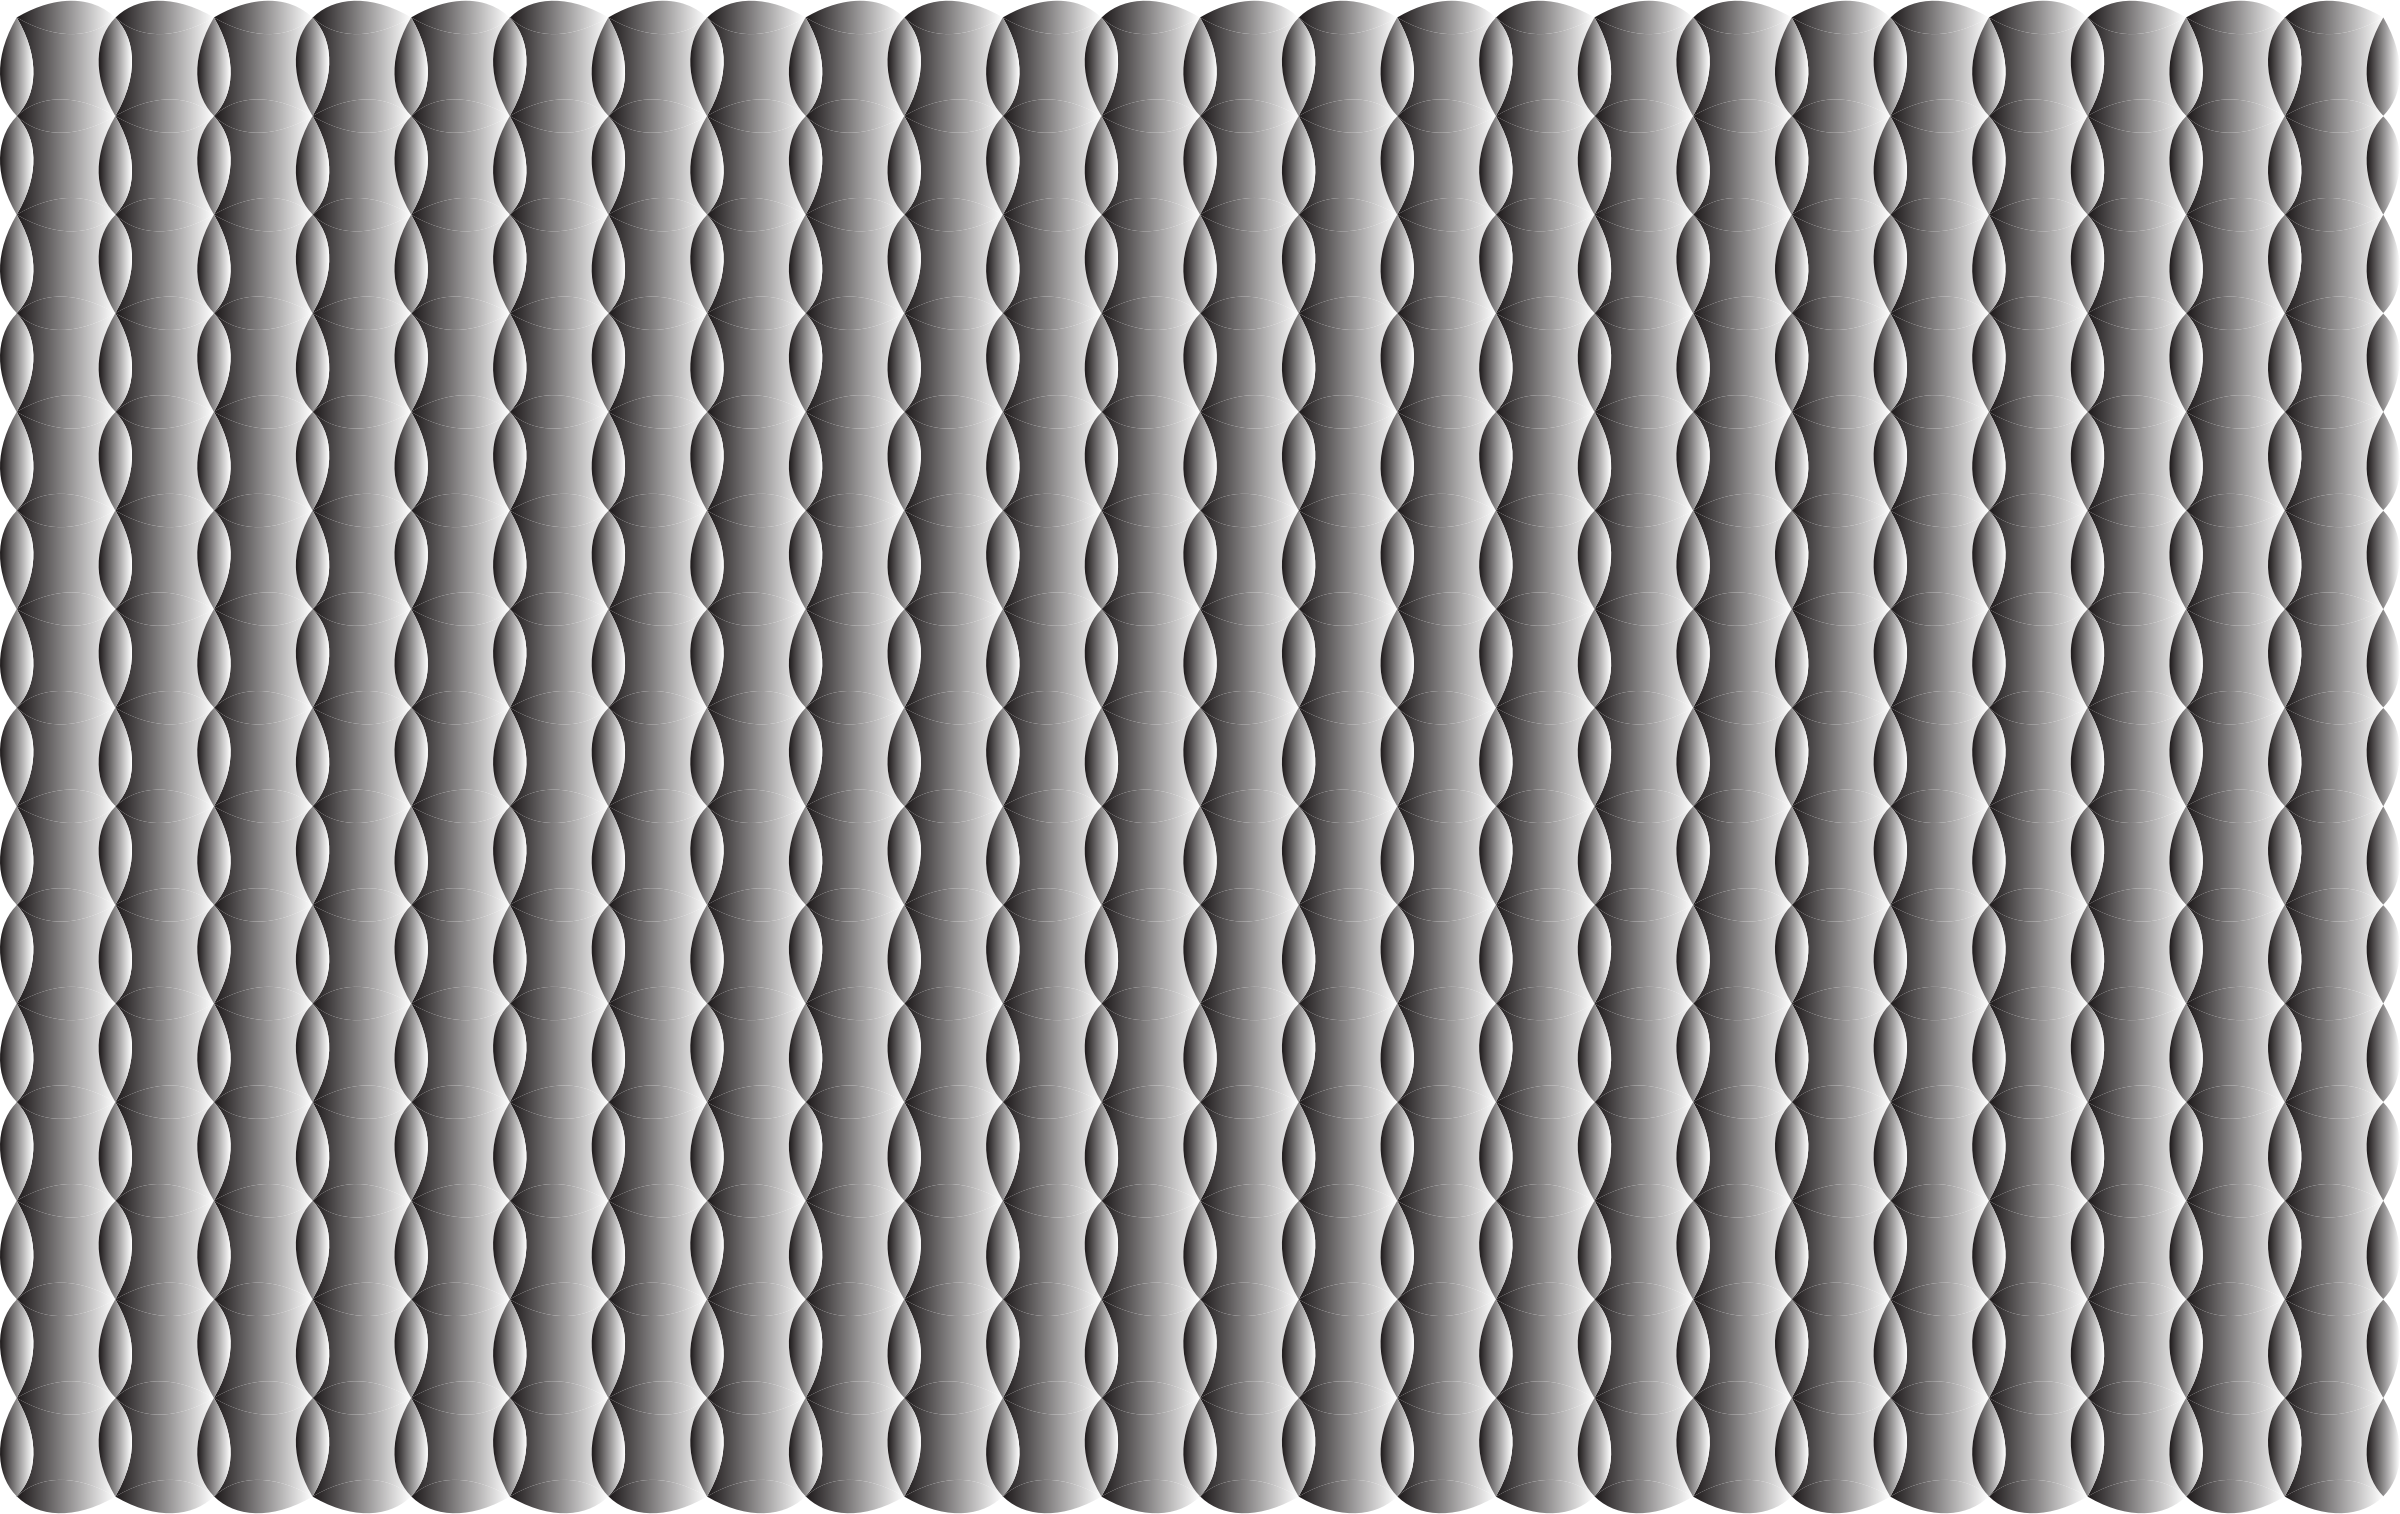 Grayscale Basic Pattern 2 Variation 2 by GDJ